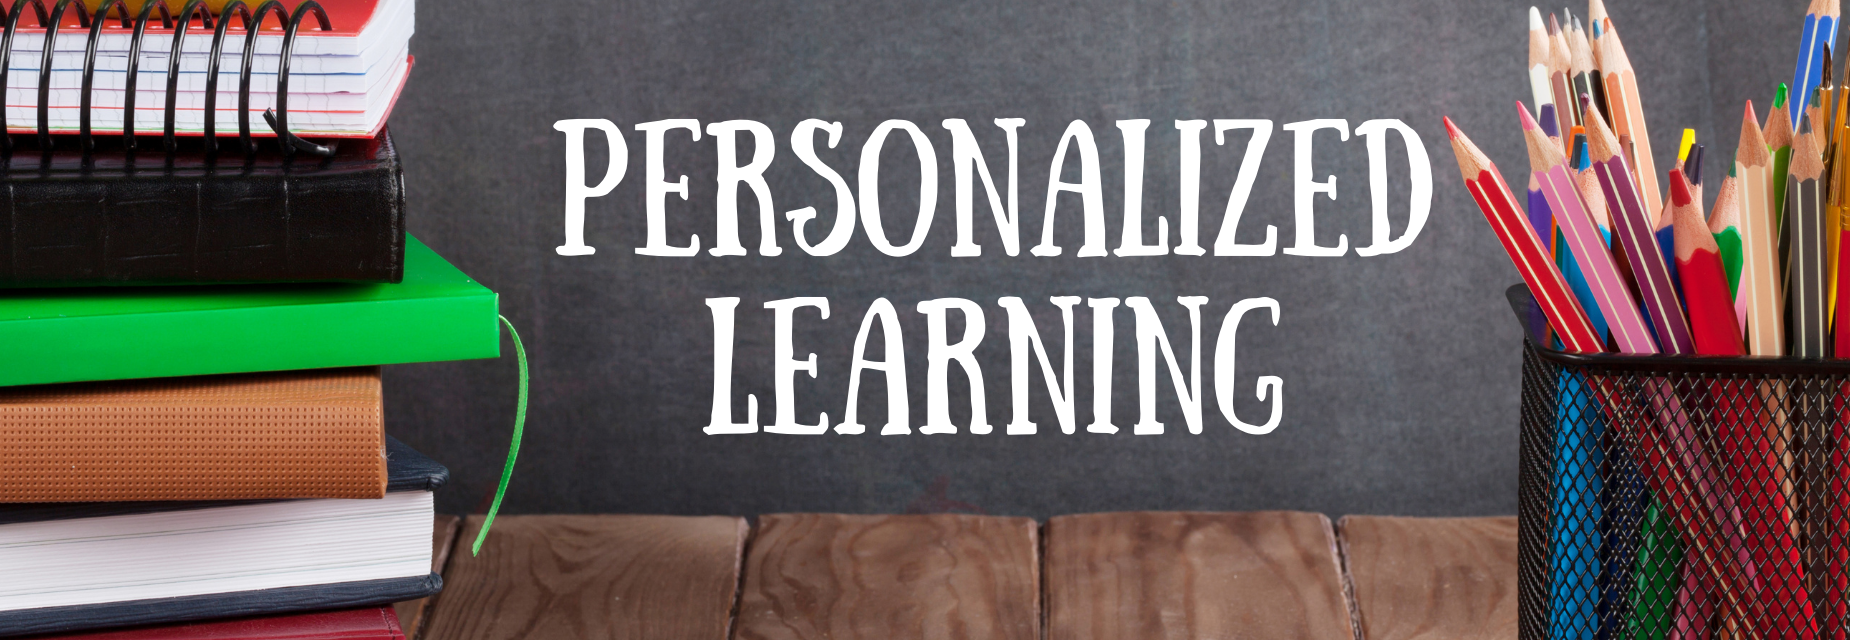 Personalized Learning banner